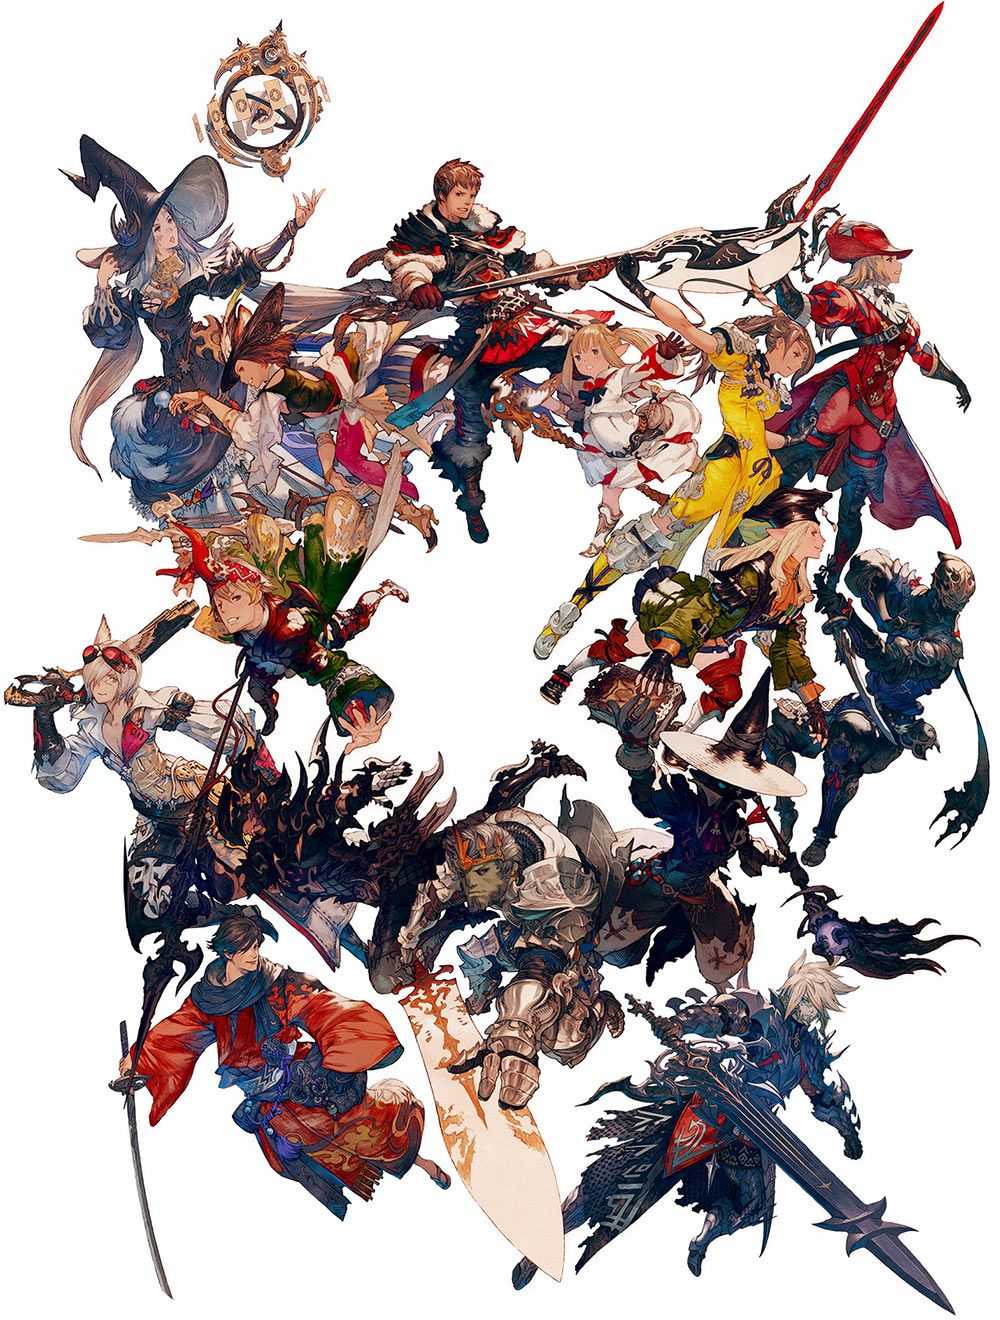 Character Jobs From Final Fantasy Xiv Stormblood Final Fantasy Artwork Final Fantasy Xiv Final Fantasy Art